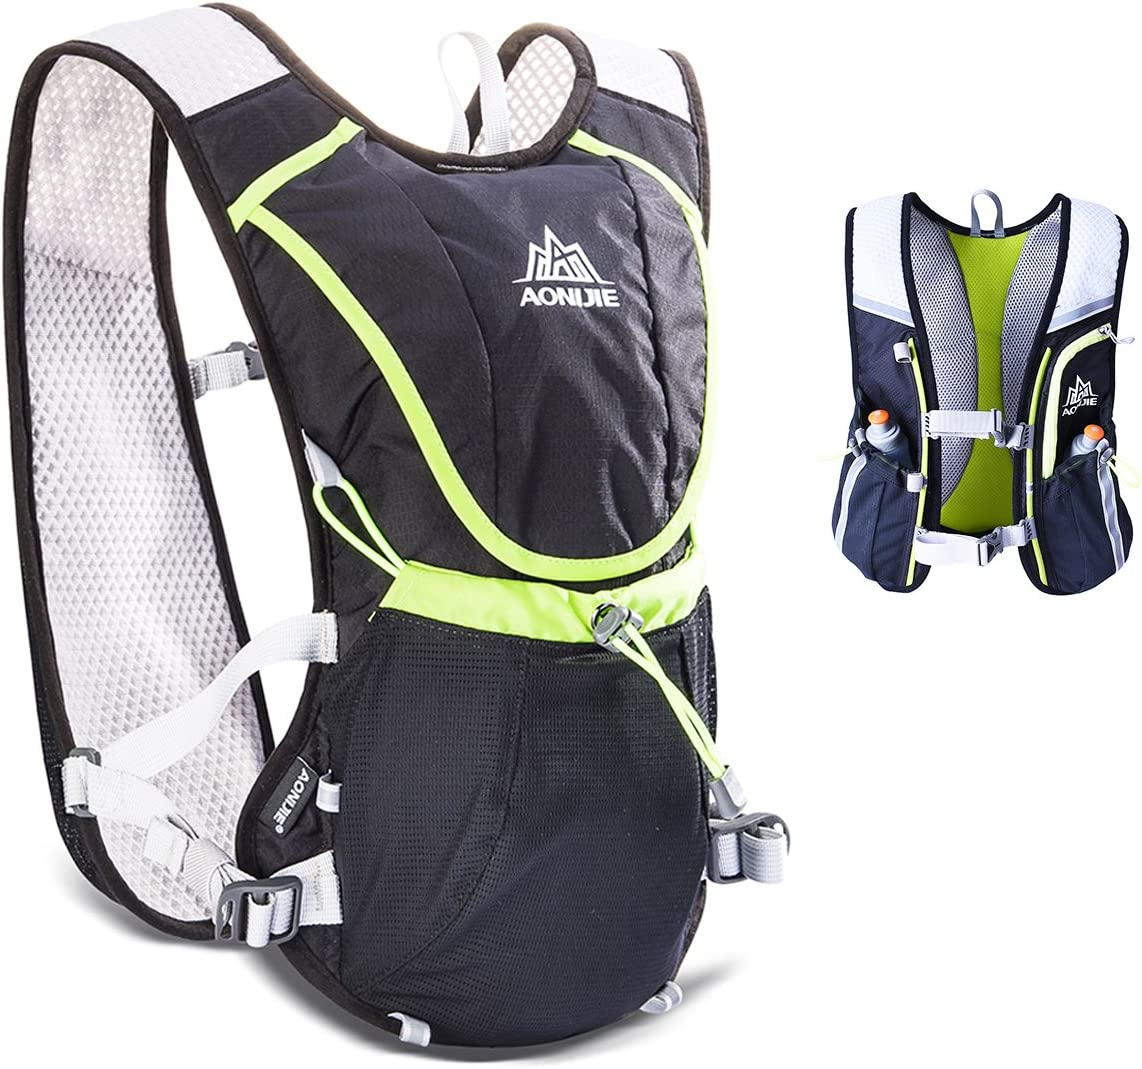 TRIWONDER 8L Hydration Vest Trail Running Hydration Pack Backpack Ultra Marathon Race Vest